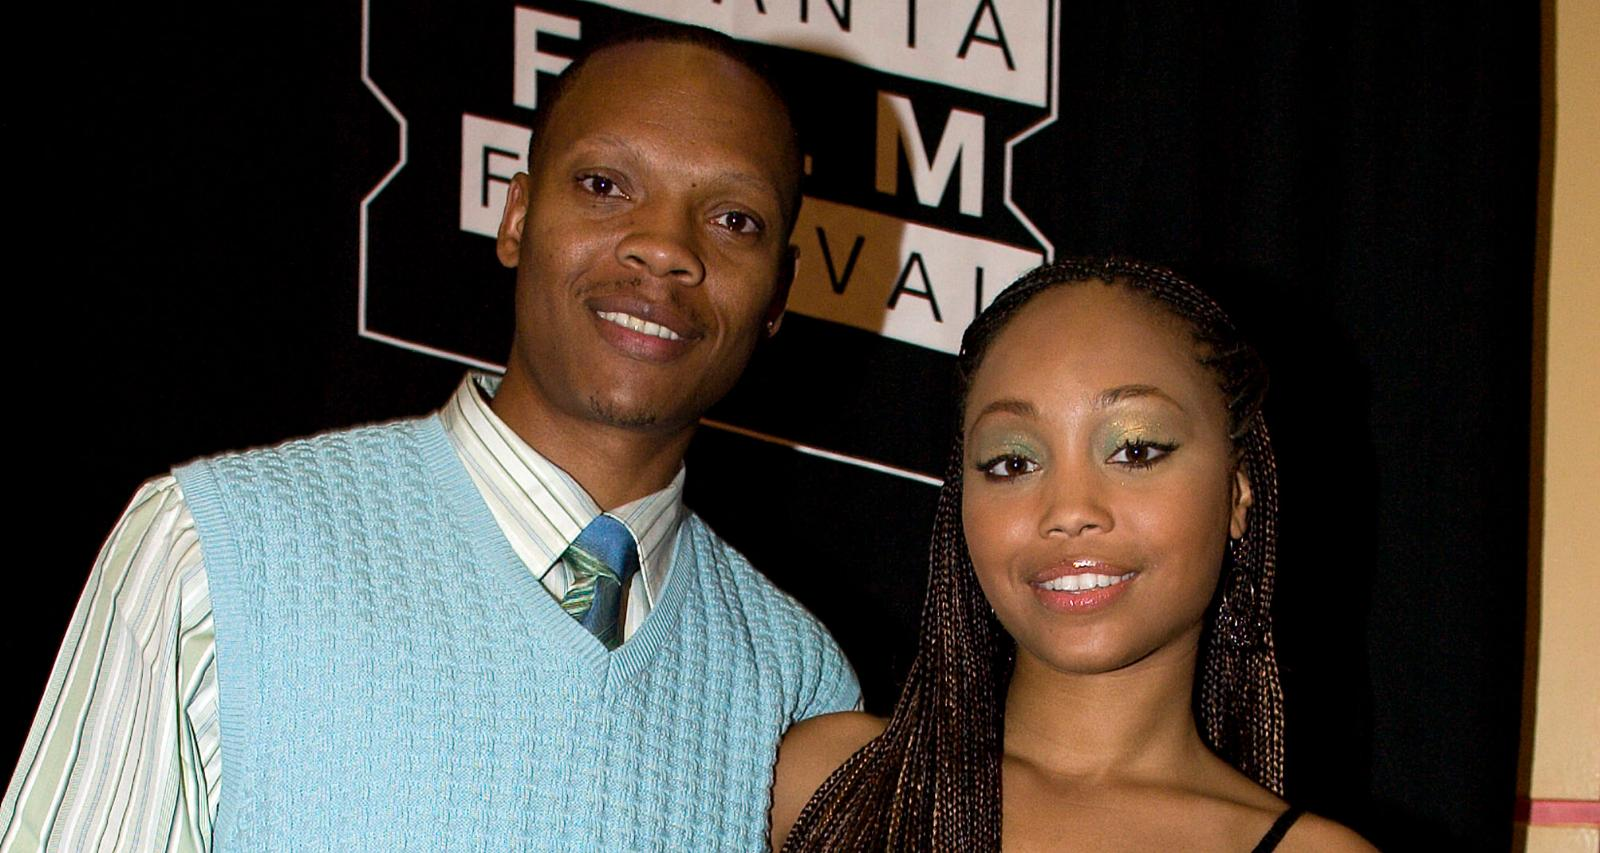 Shamari DeVoe's net worth